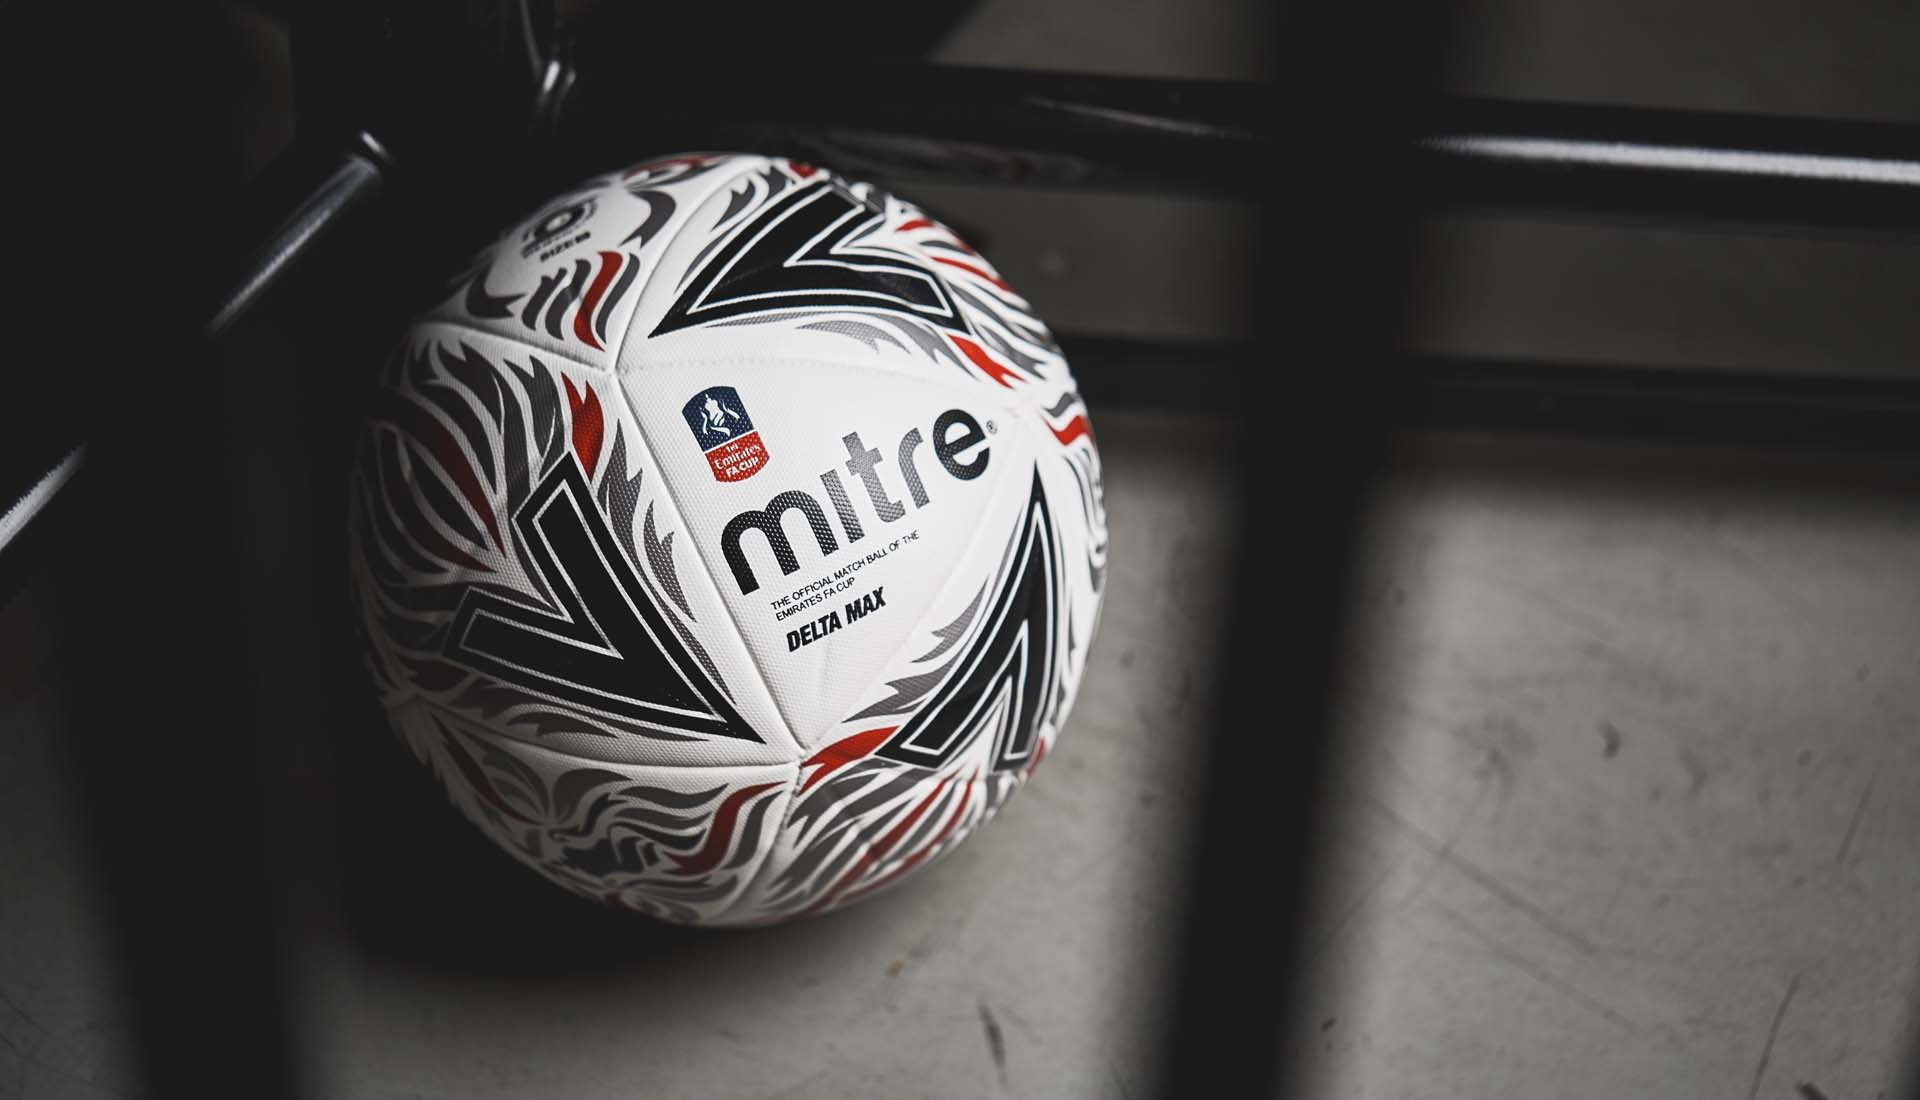 fff8bd6cee Mitre Launch 18/19 FA Cup Ball - SoccerBible.